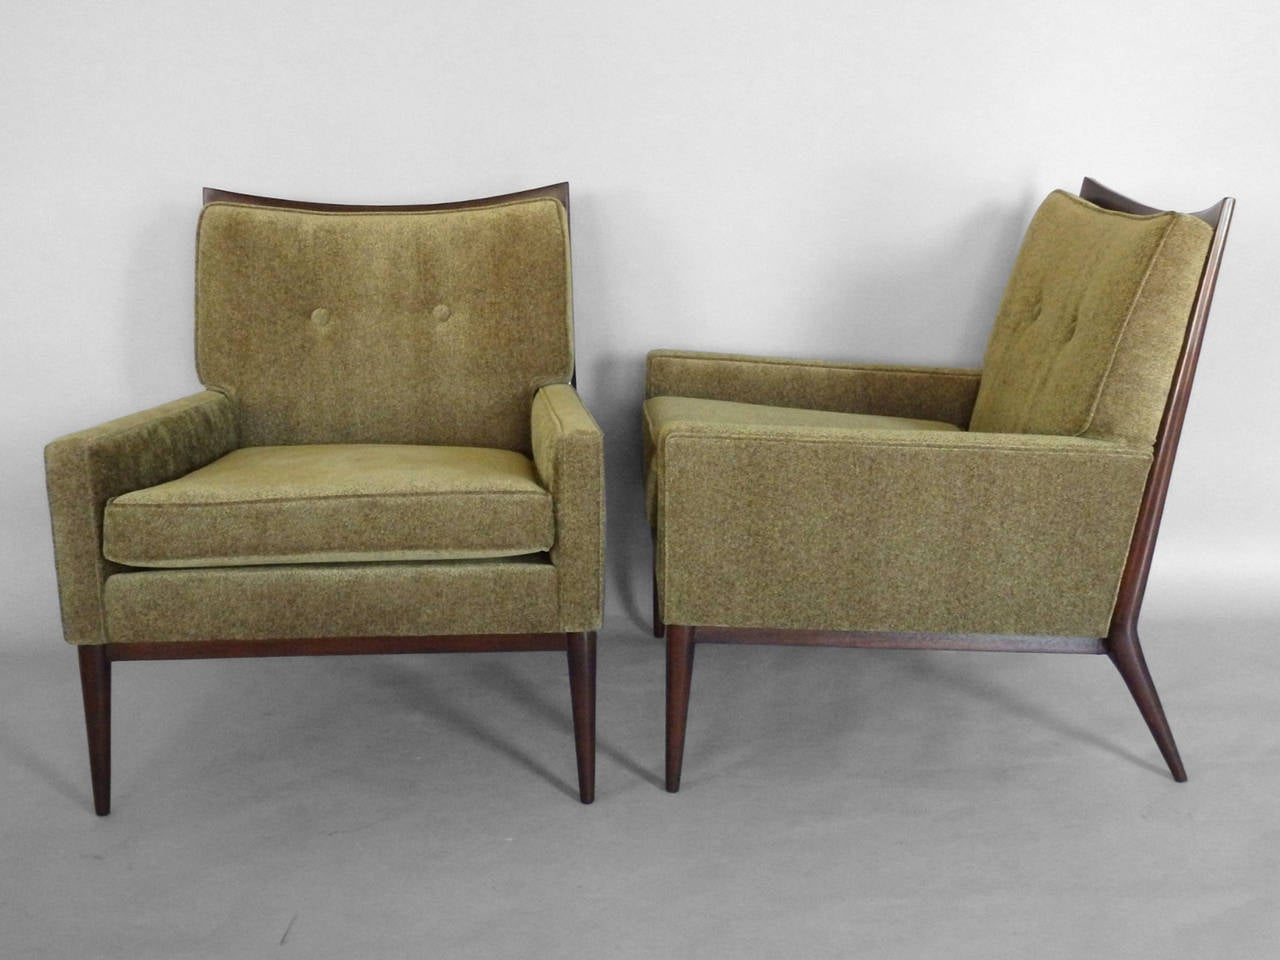 Pair of lounge chairs by Paul McCobb for Directional Furniture. Bases refinished and freshly re upholstered .